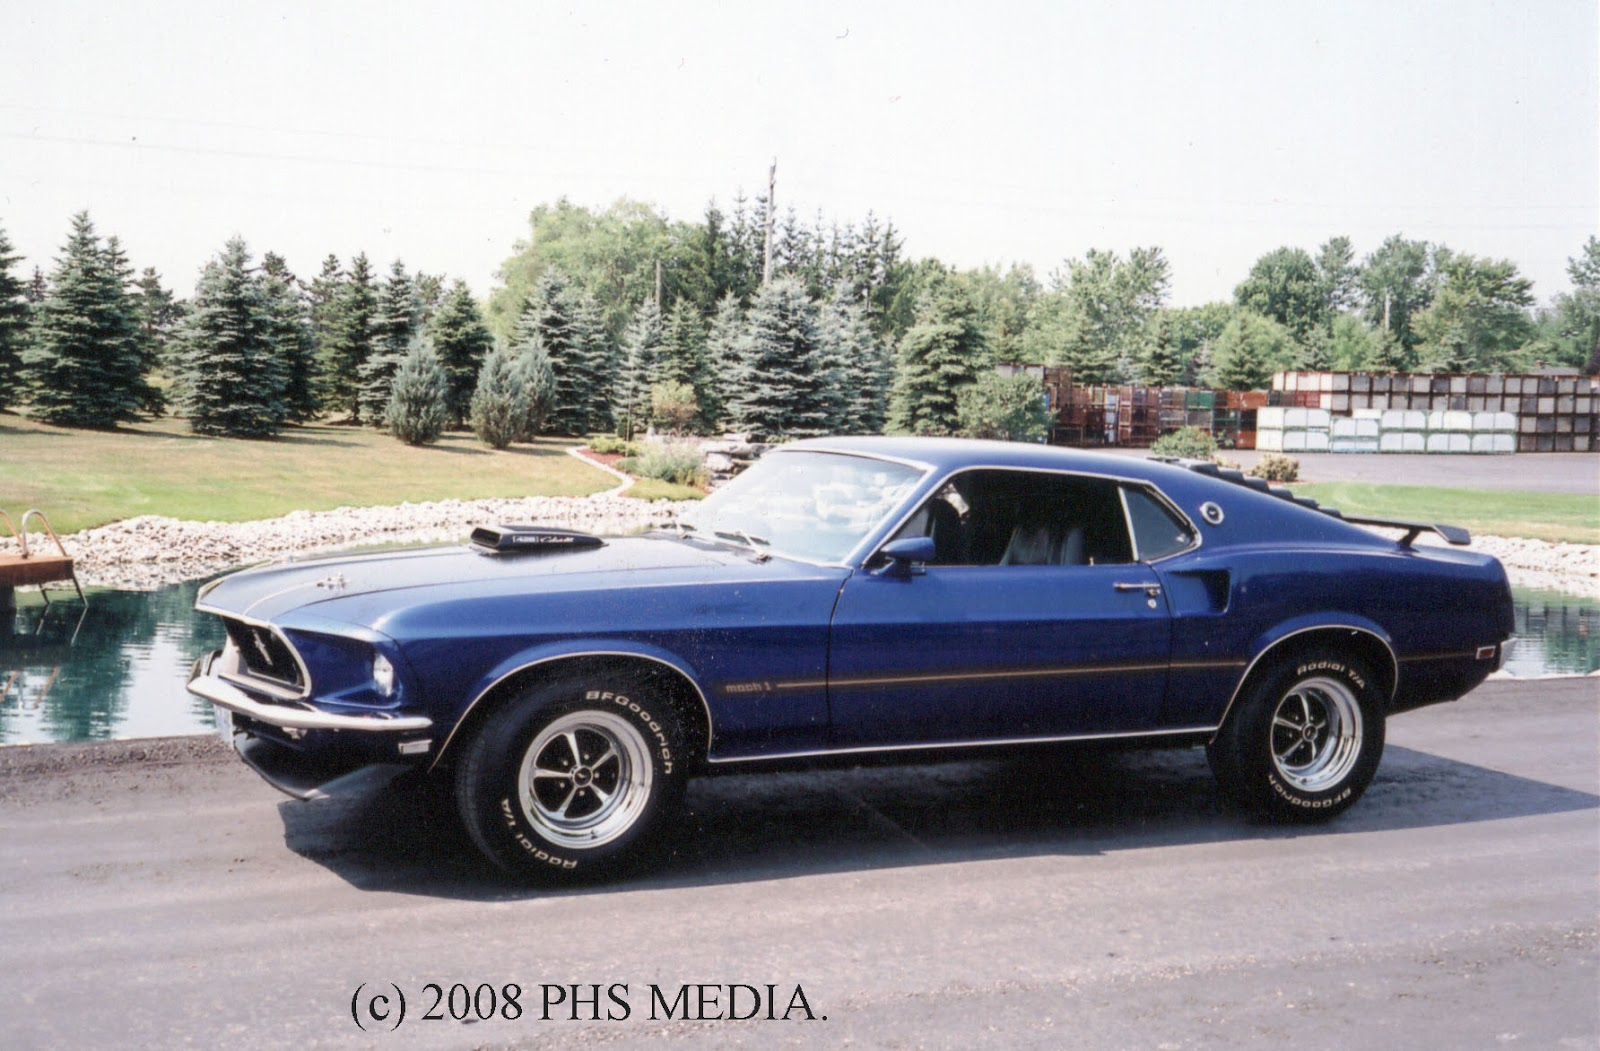 Muscle Car Icons 1969 Mustang 428 Cobrajet Mach 1 Ford Engine Diagram Motor Company Like All The Other Players Took A Long Time To Make Serious Round Big Block Pony Pioneered With Their